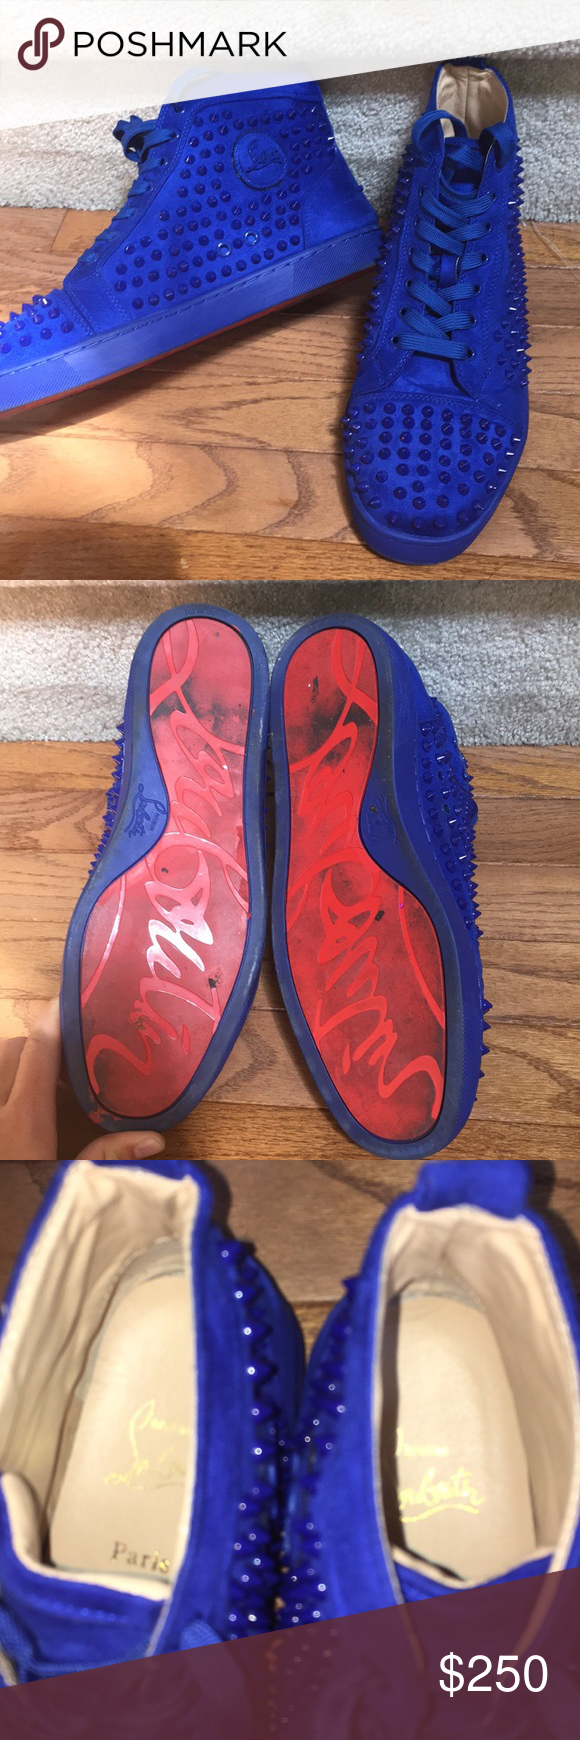 blue red bottoms